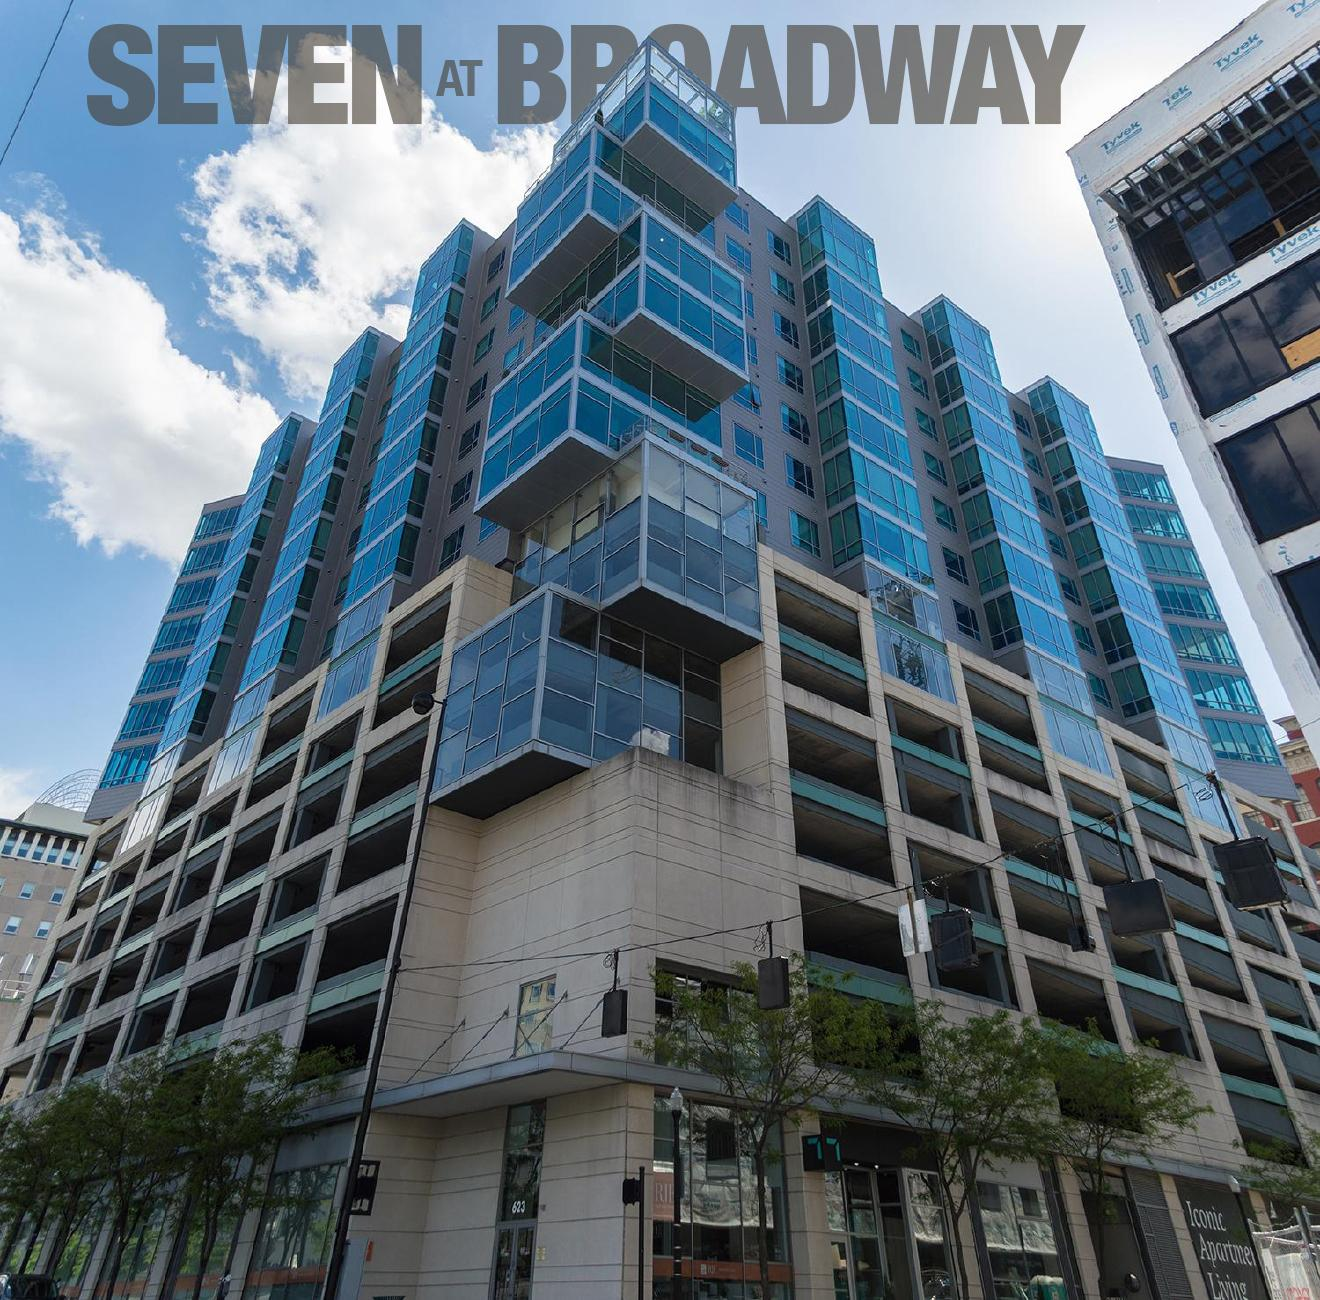 Seven at Broadway / DESCRIPTION: Built on top of an 8-story parking garage, it has over 100 luxury apartments with sweeping views of the city. A private rooftop is reserved for its residents. / APARTMENTS START AT: $1340 per month / ADDRESS: 345 E. 7th Street / PHONE: (844) 798-2287 / IMAGE: Phil Armstrong, Cincinnati Refined // Published: 1.17.18